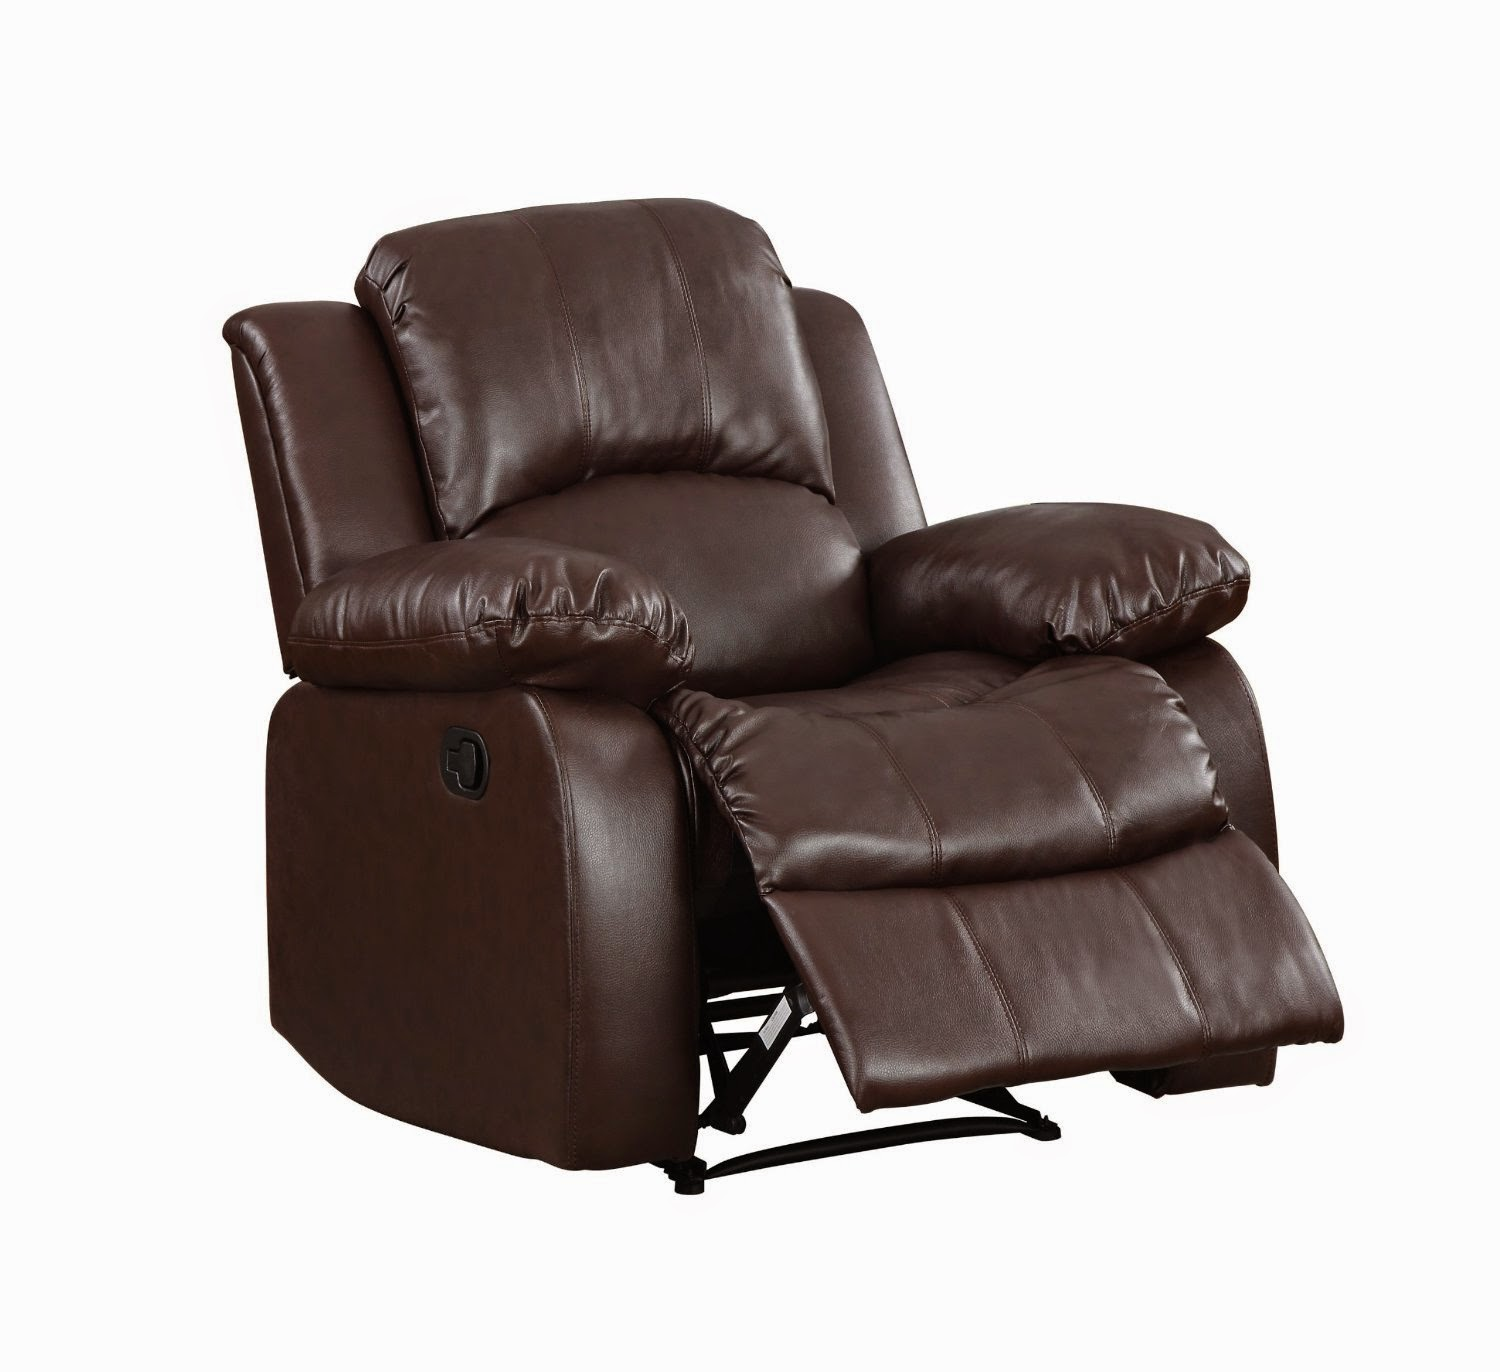 Leather Recliner Sectional Sofa Cheap Sofas Online Reclining Sale Costco